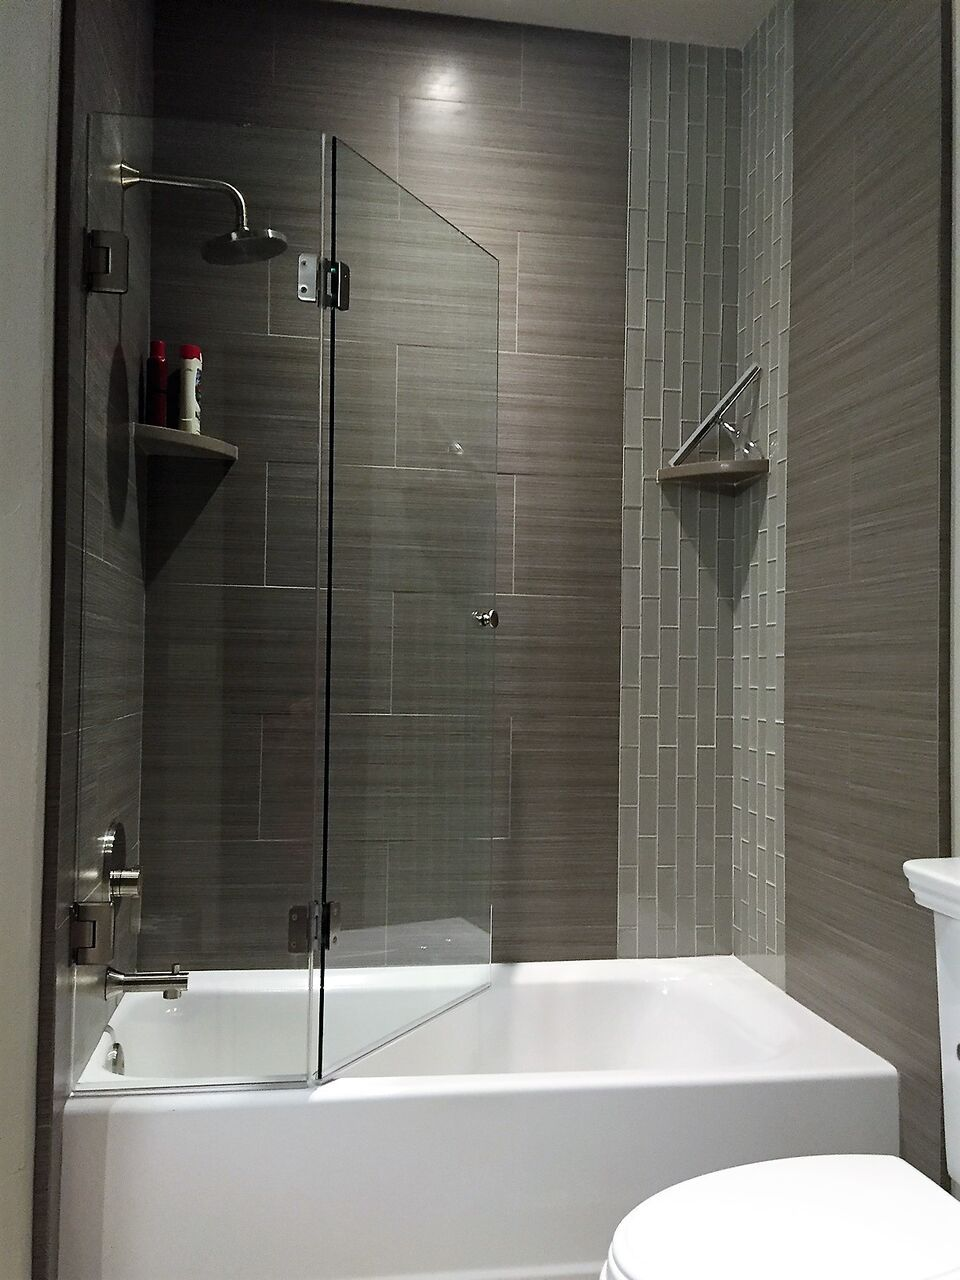 his has become a new addition to custom shower options for tubs. It ...